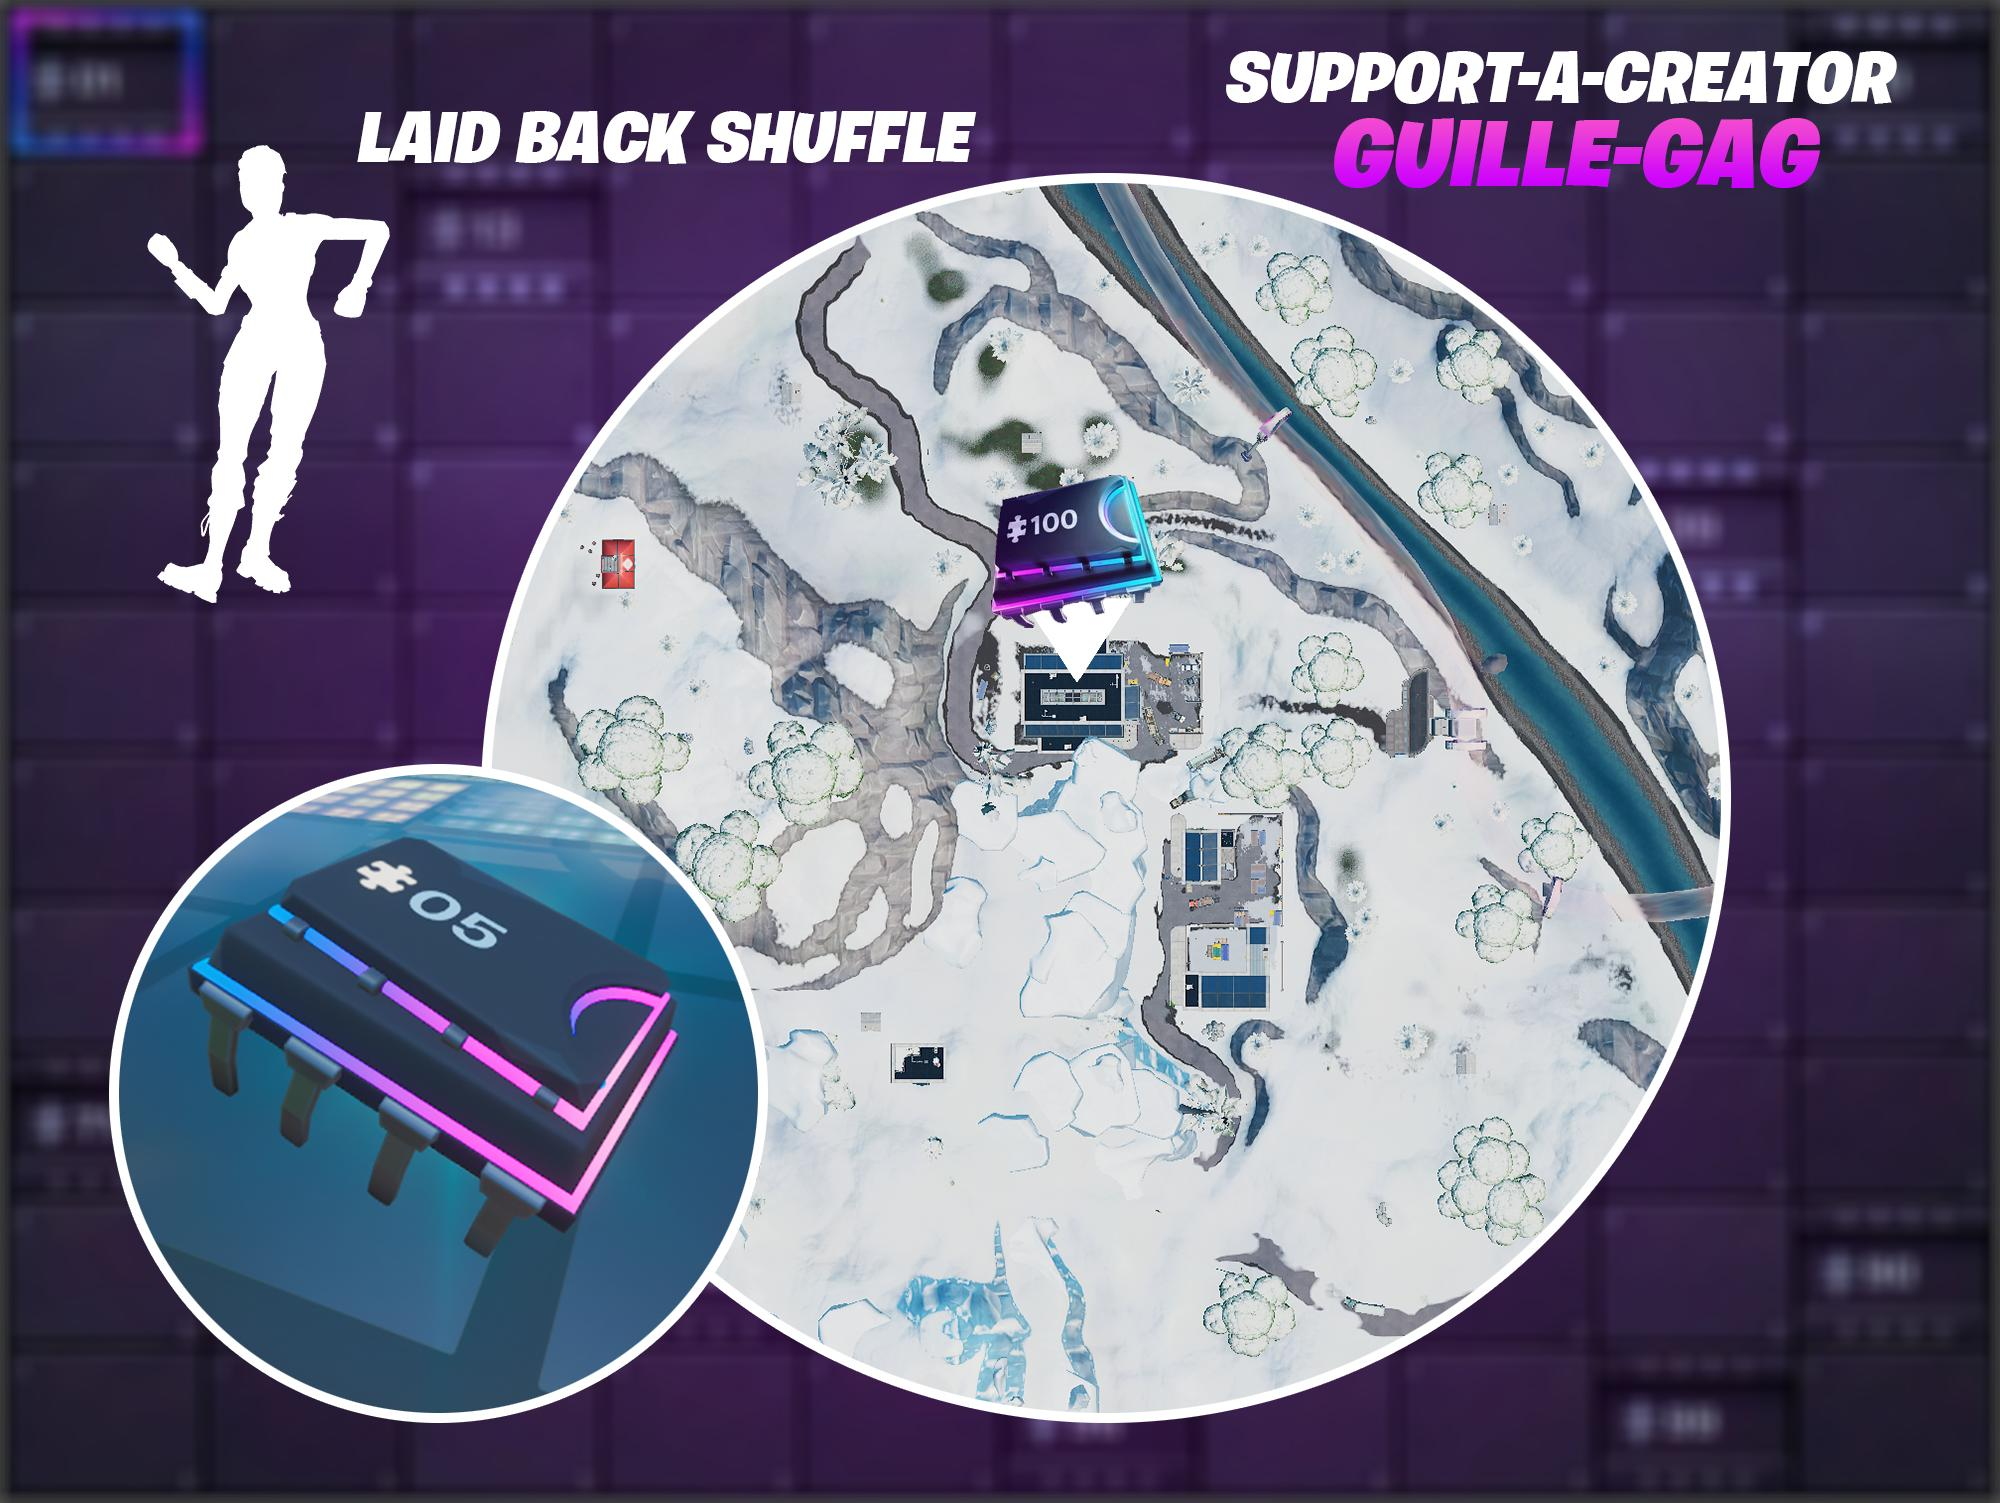 Fortnite Fortbyte 5: dance club with Laid Back Shuffle emote location